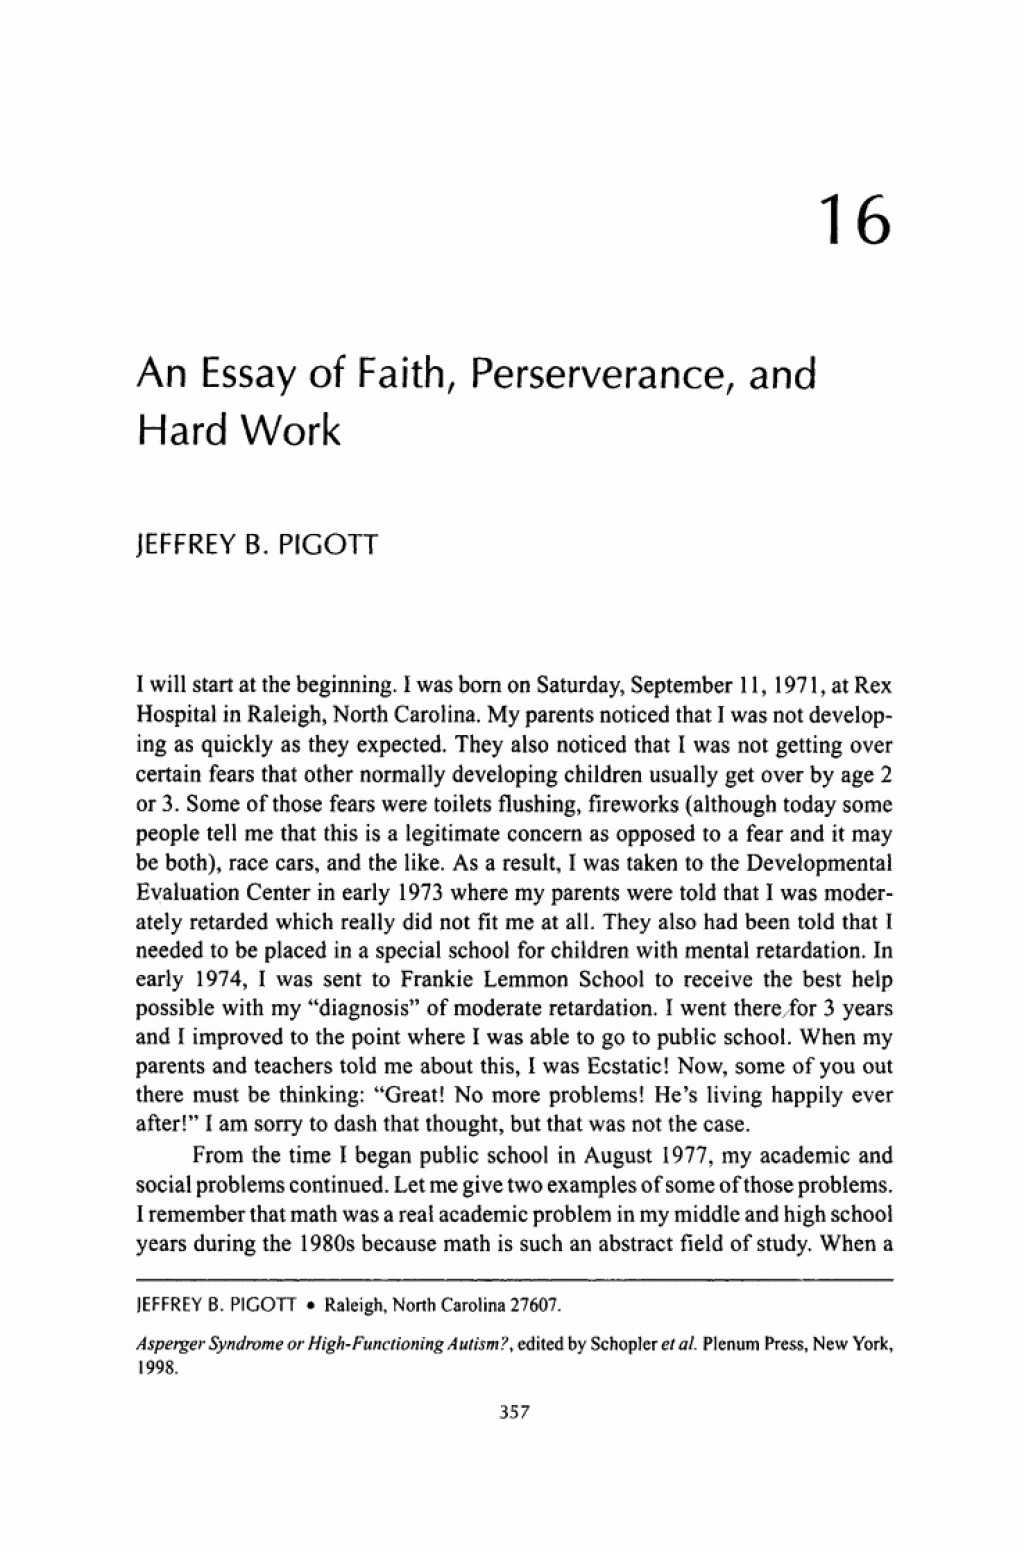 007 Essay Example Hard Work Is The Key To Success Words On In Tamil Not Only Hindi Short Urdu English Wonderful Pdf Pays Off Writing Large